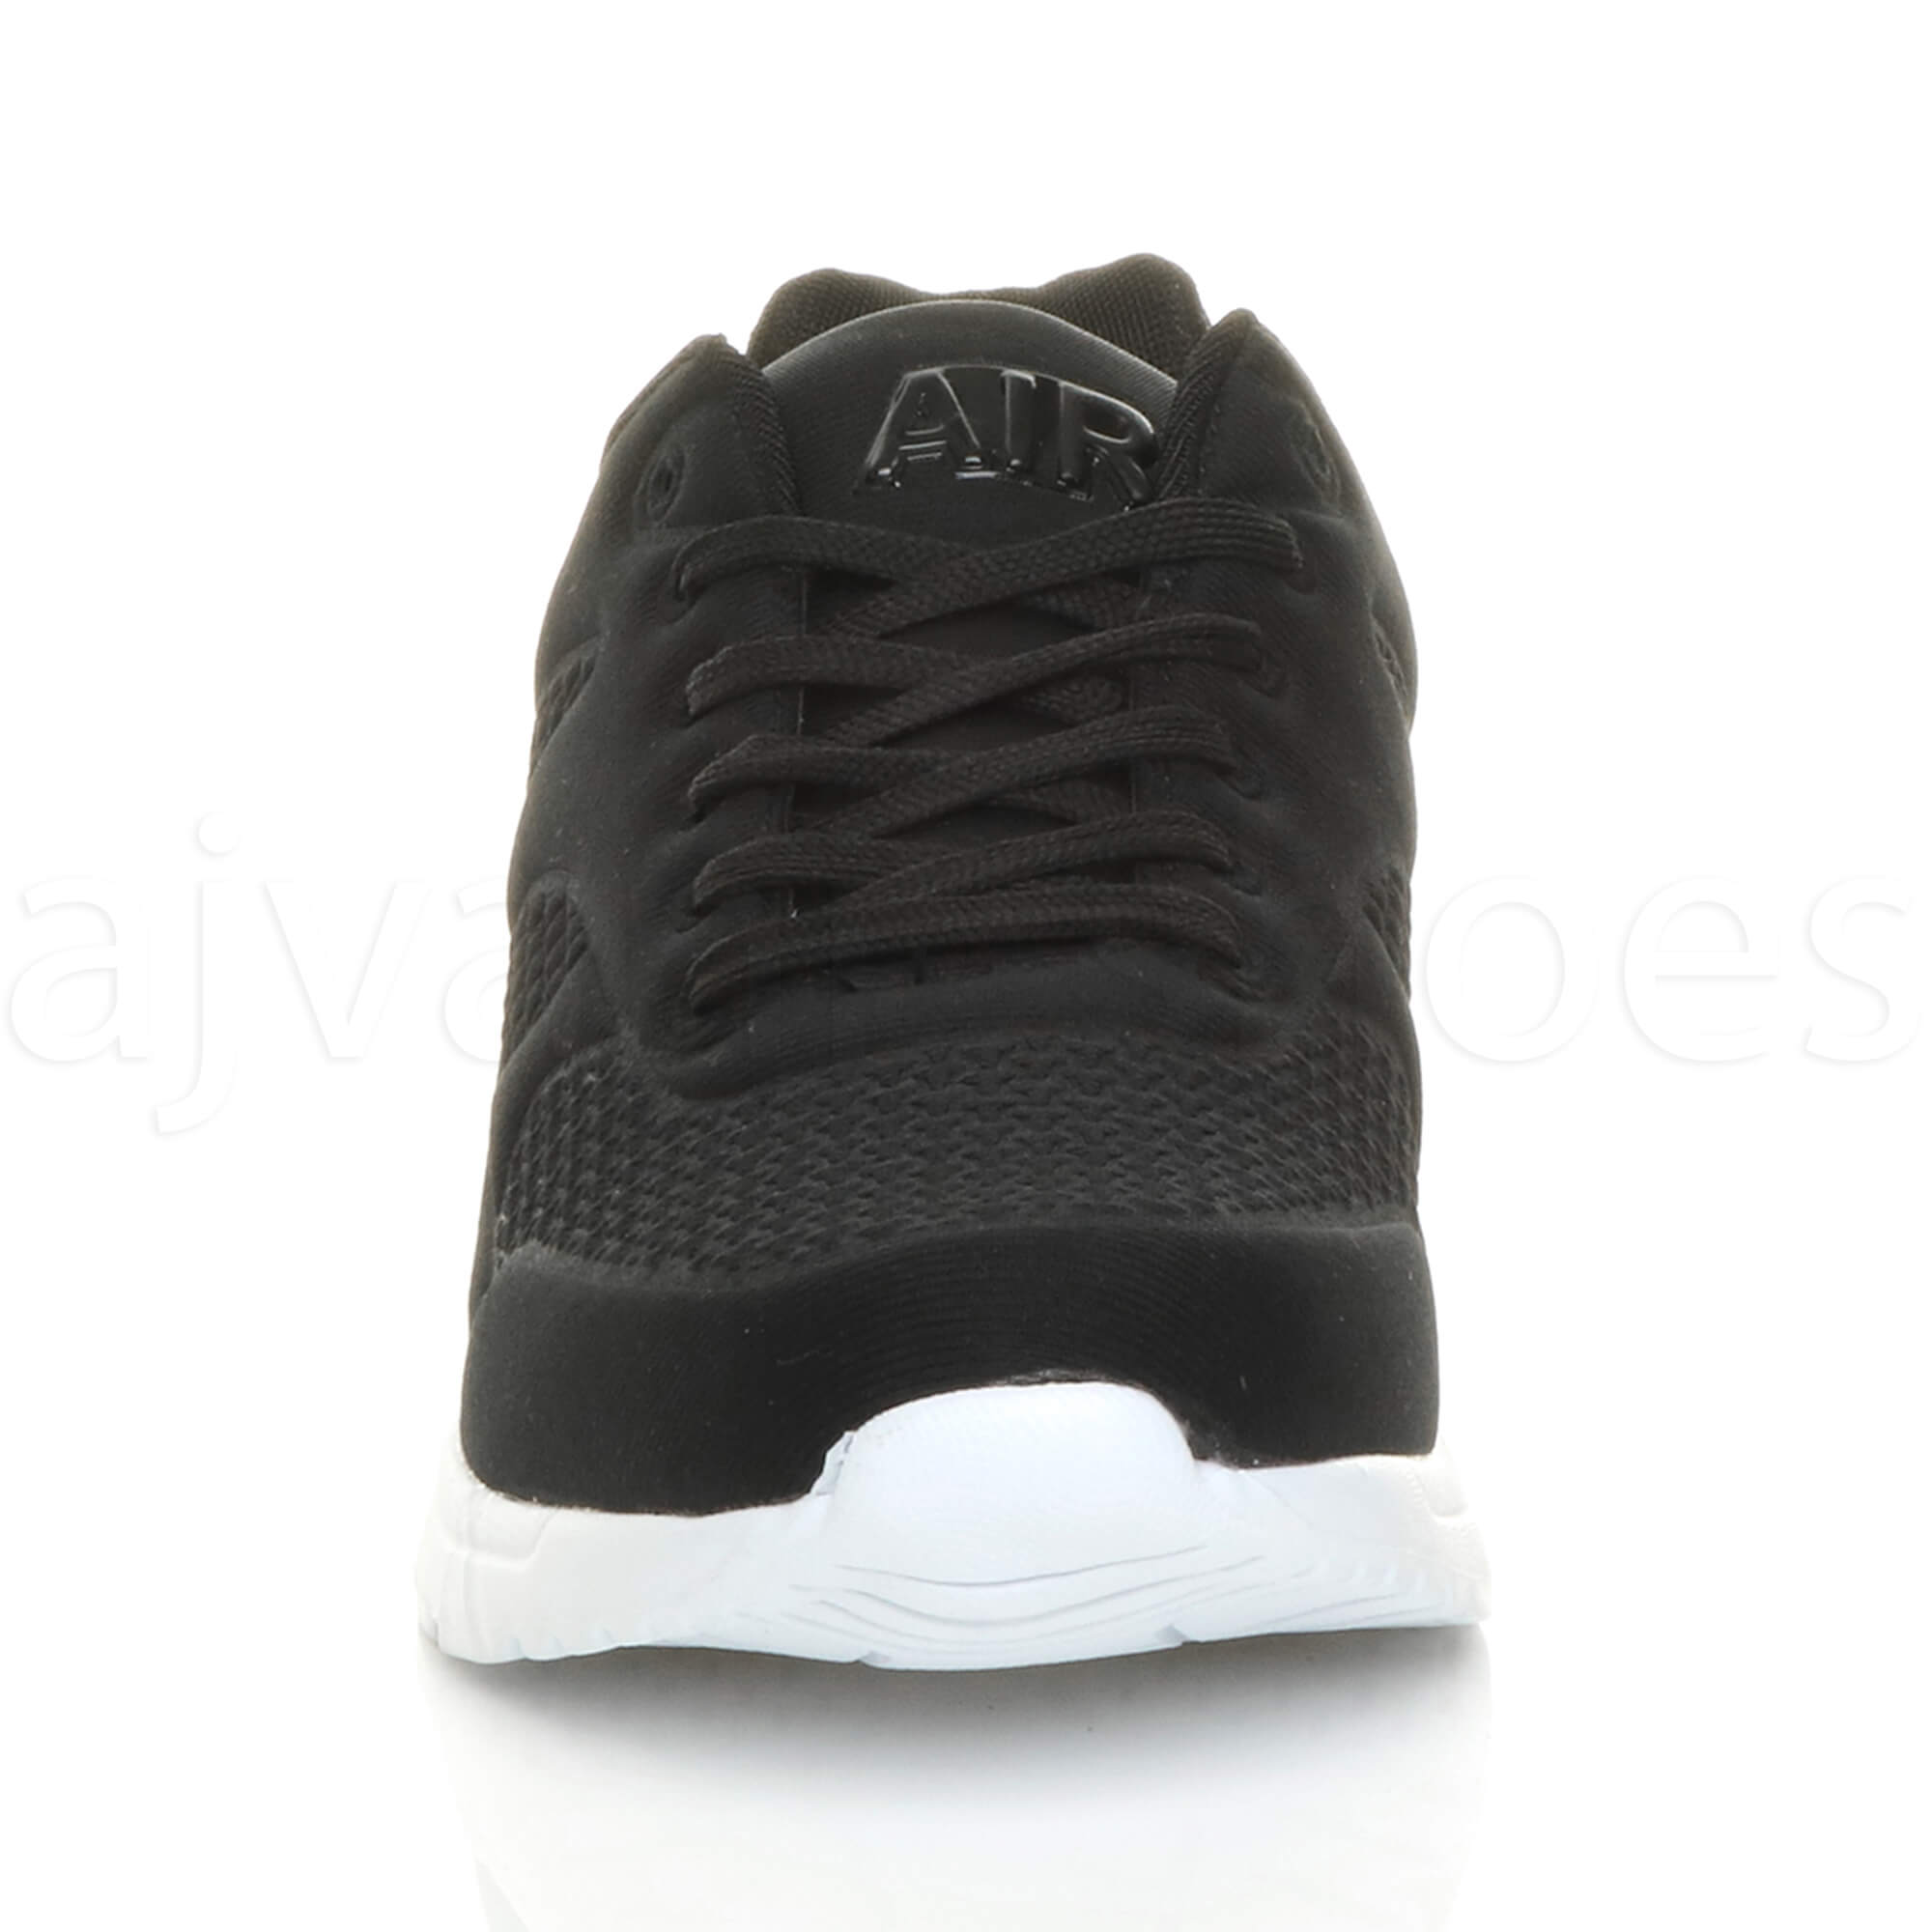 MENS-LACE-UP-FLEXIBLE-SOLE-RUNNING-SPORT-GYM-FITNESS-TRAINERS-SNEAKERS-SIZE miniatuur 7